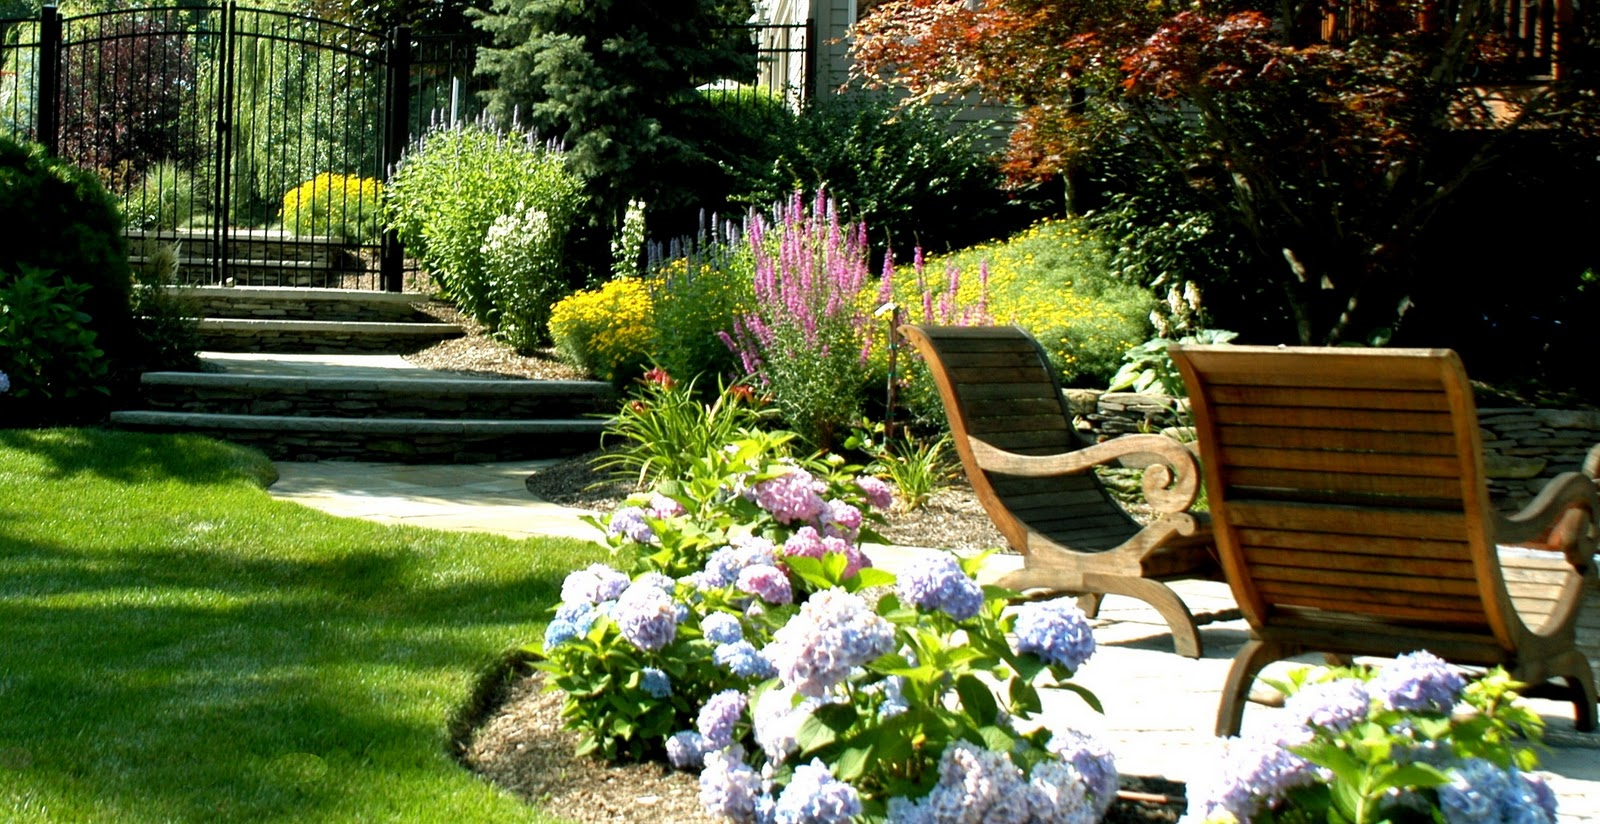 Hightechlandscapes new jersey landscape design for Garden designs landscaping